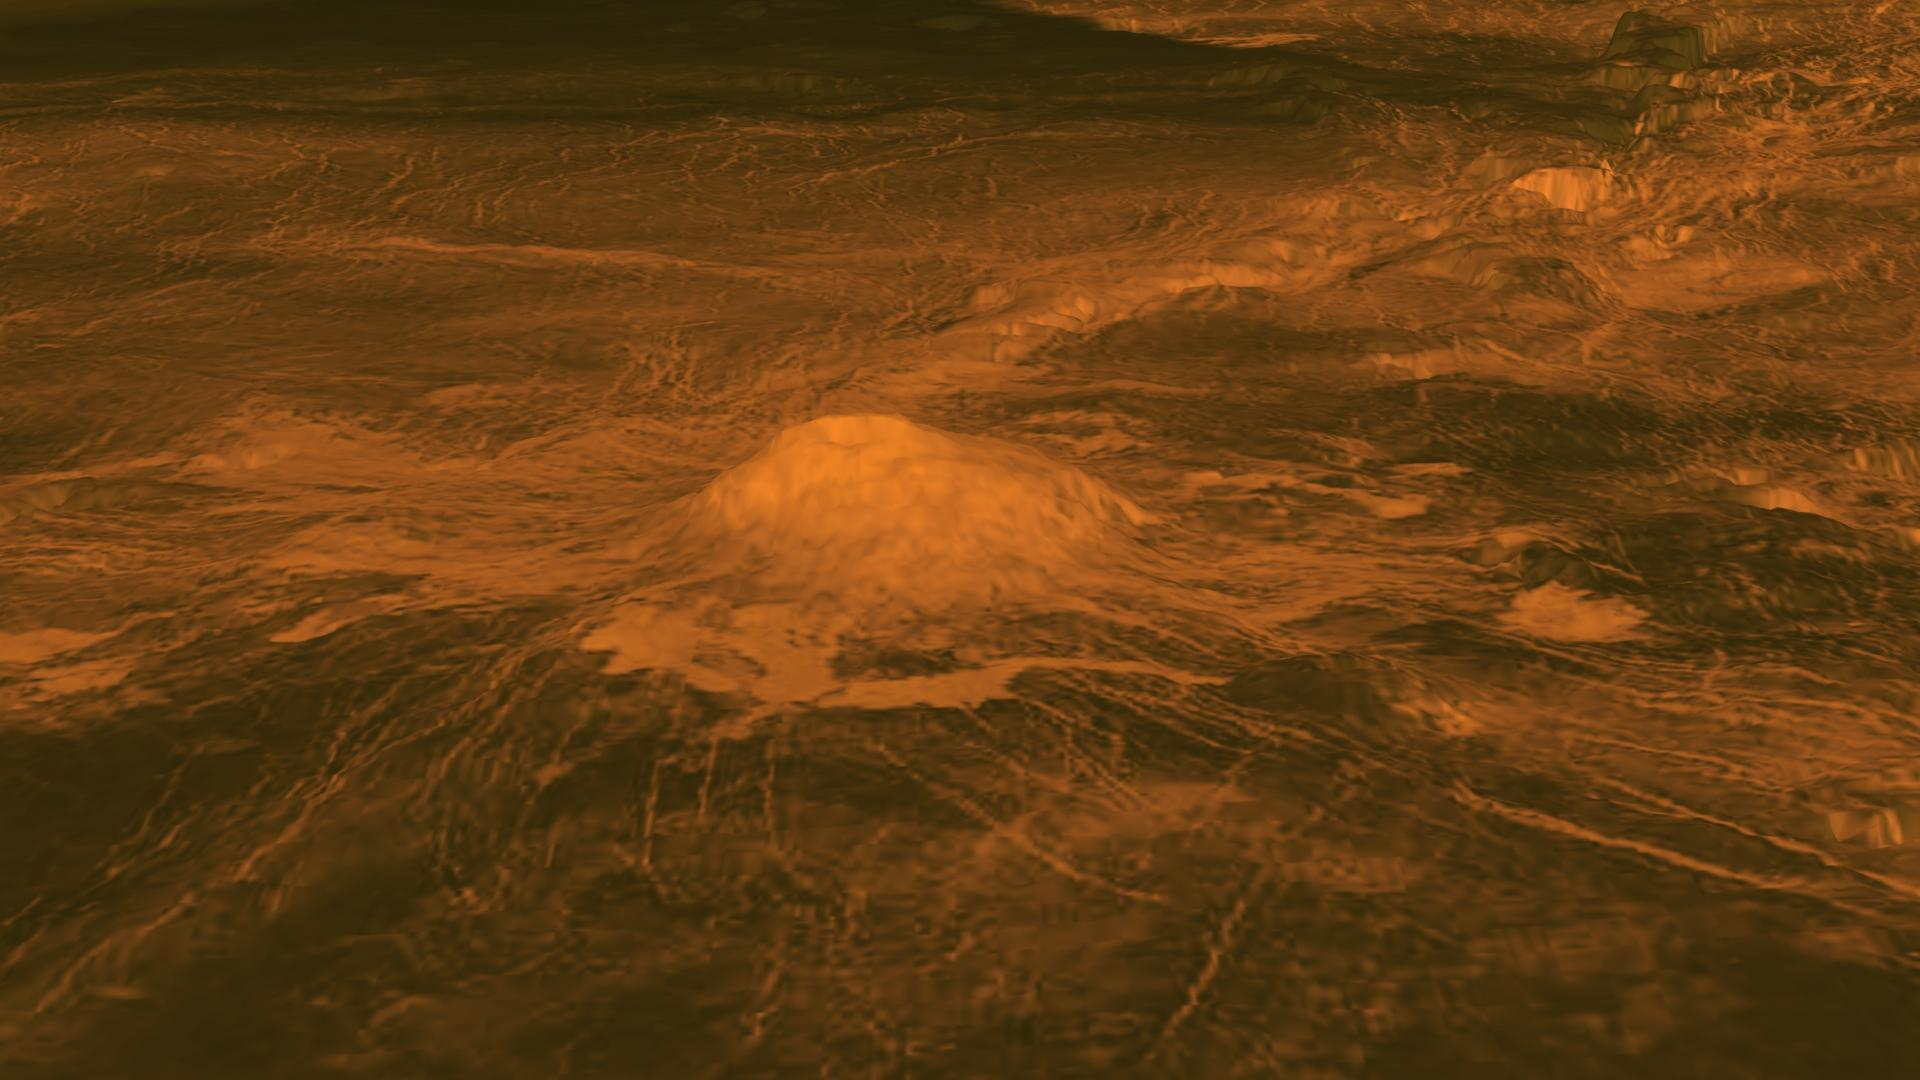 venus volcanoes nasa - photo #1